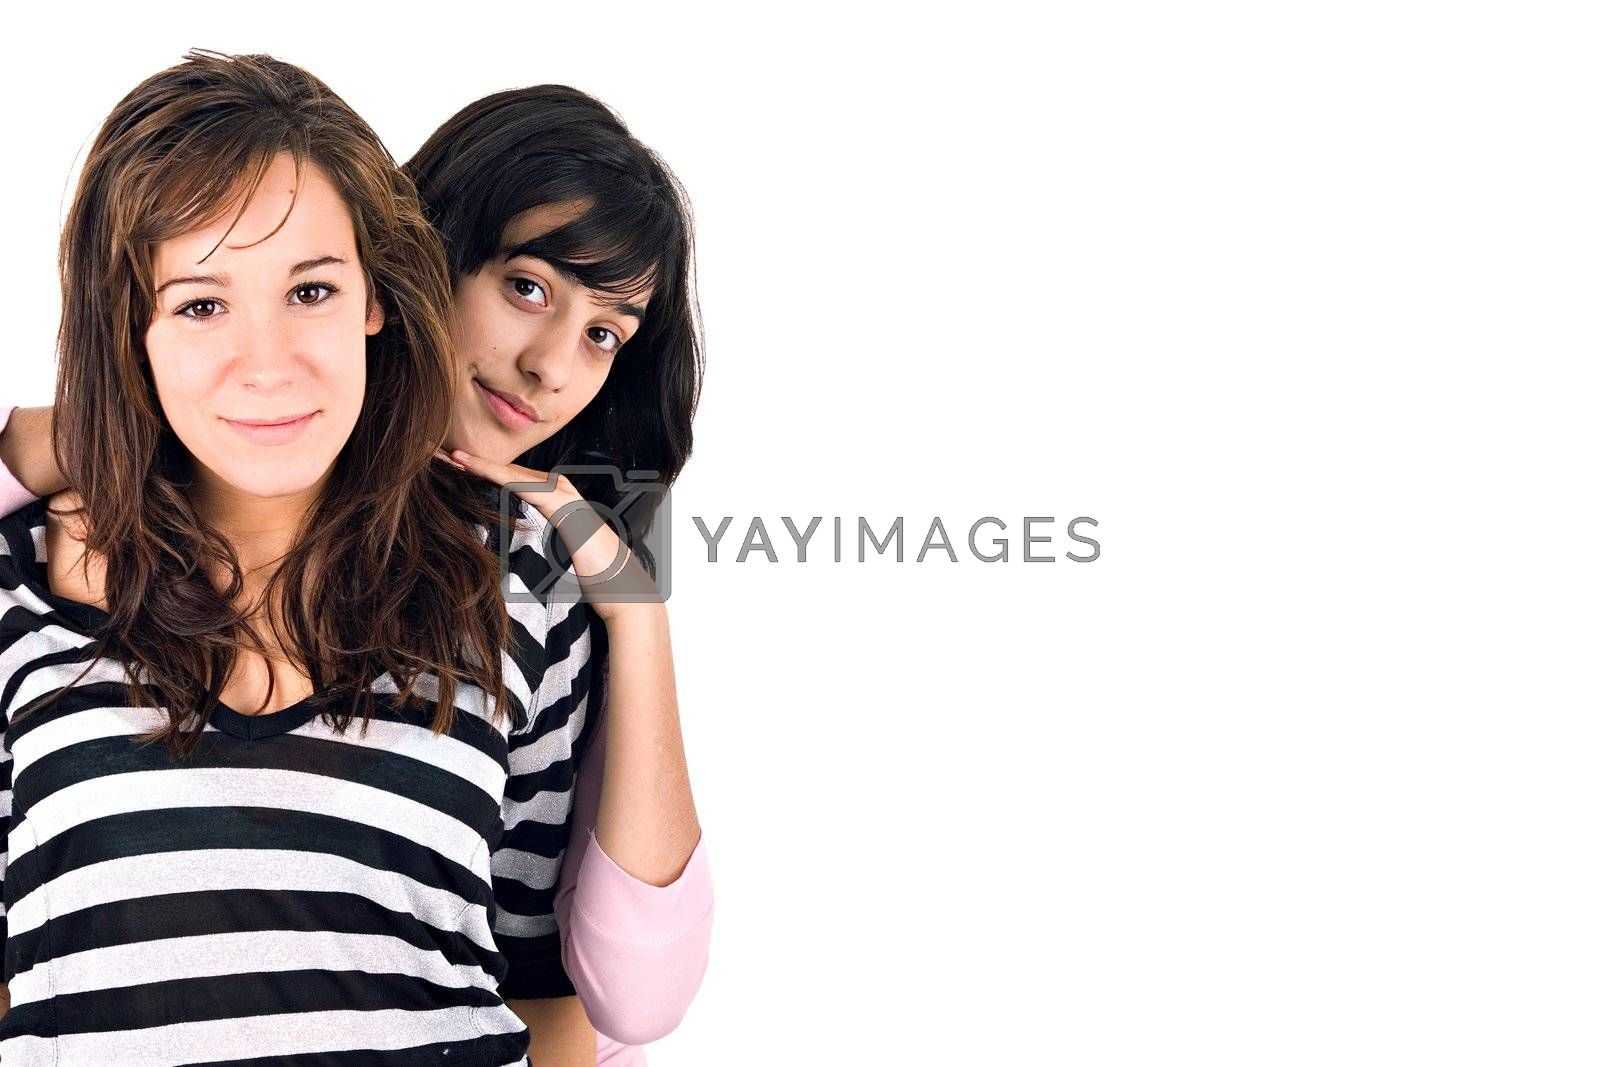 Two girls portrait with copy space, over white background.